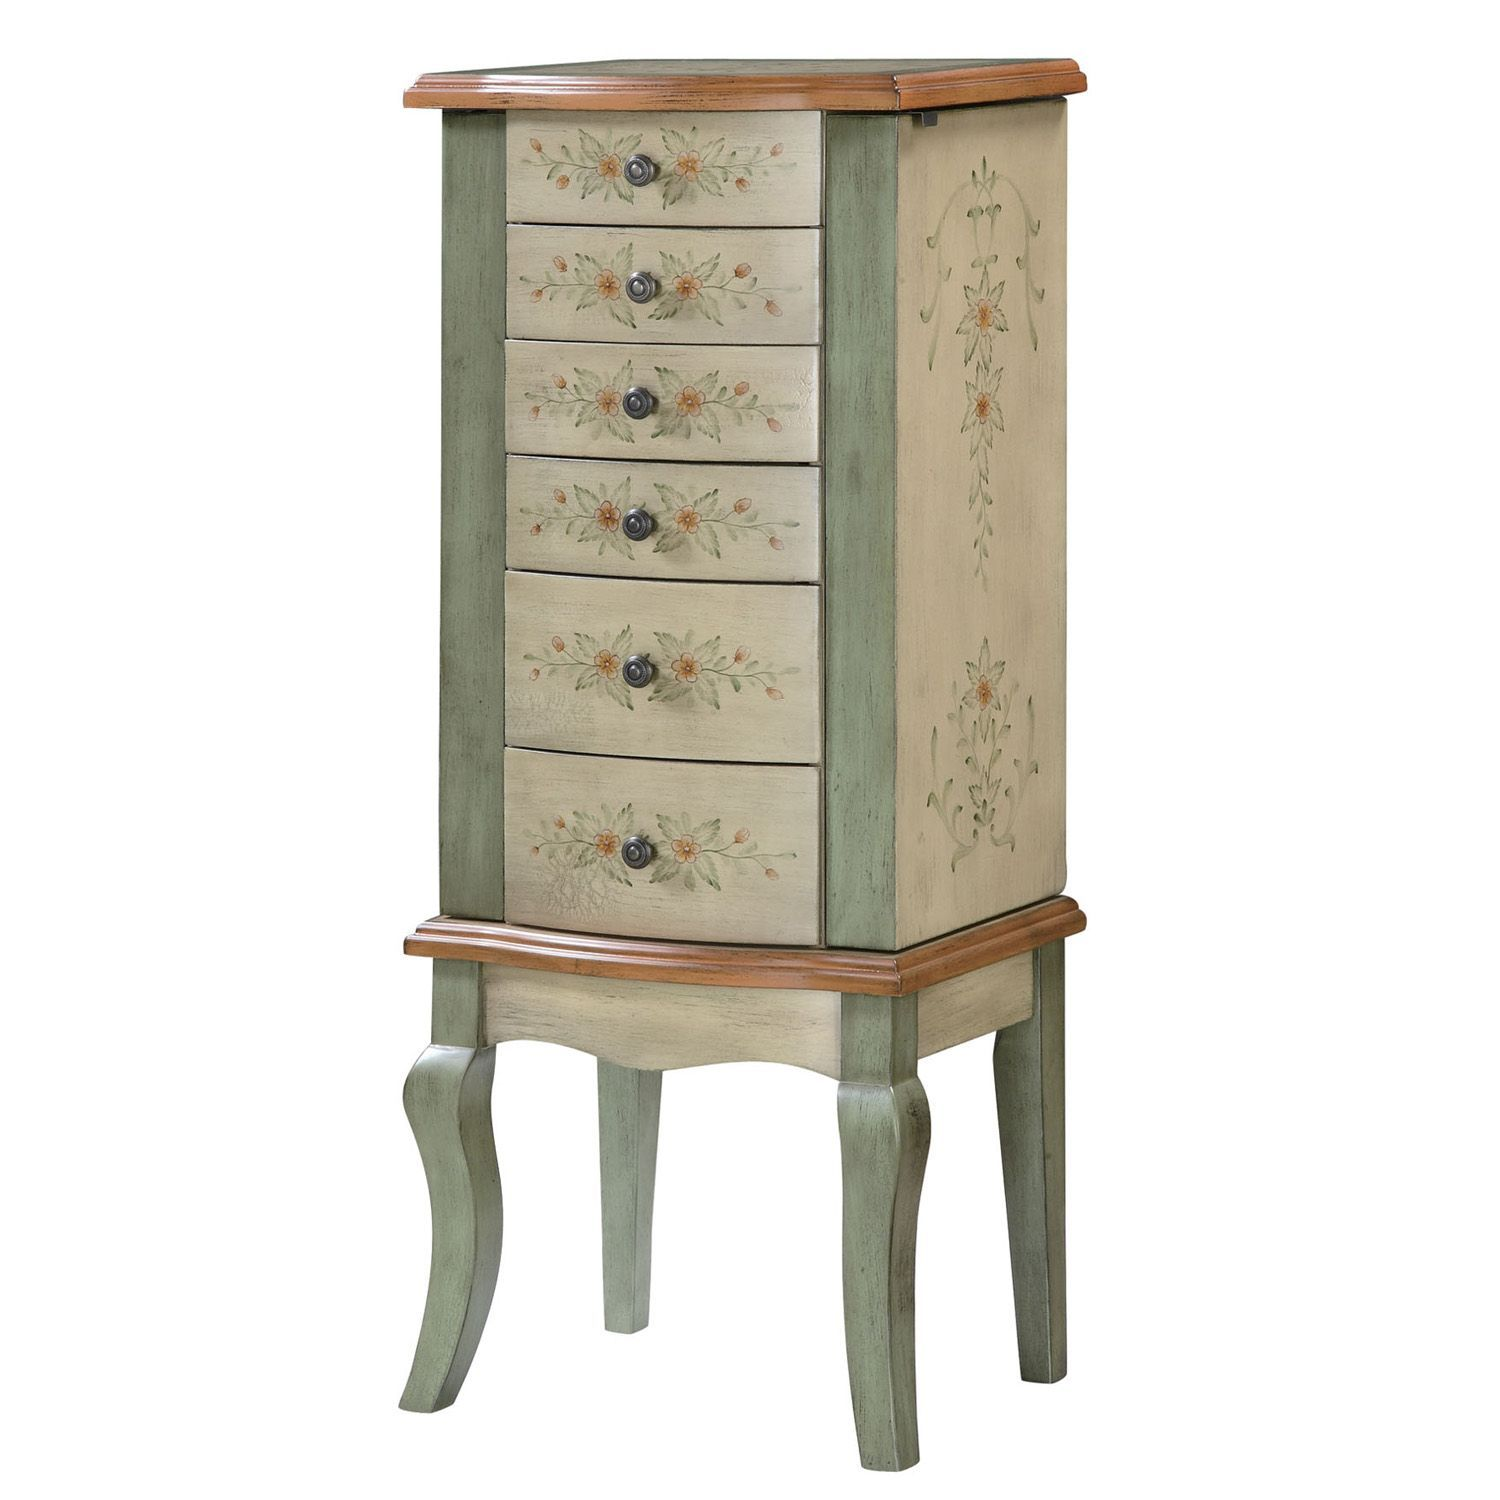 English Garden Hand Painted Jewelry Armoire English gardens